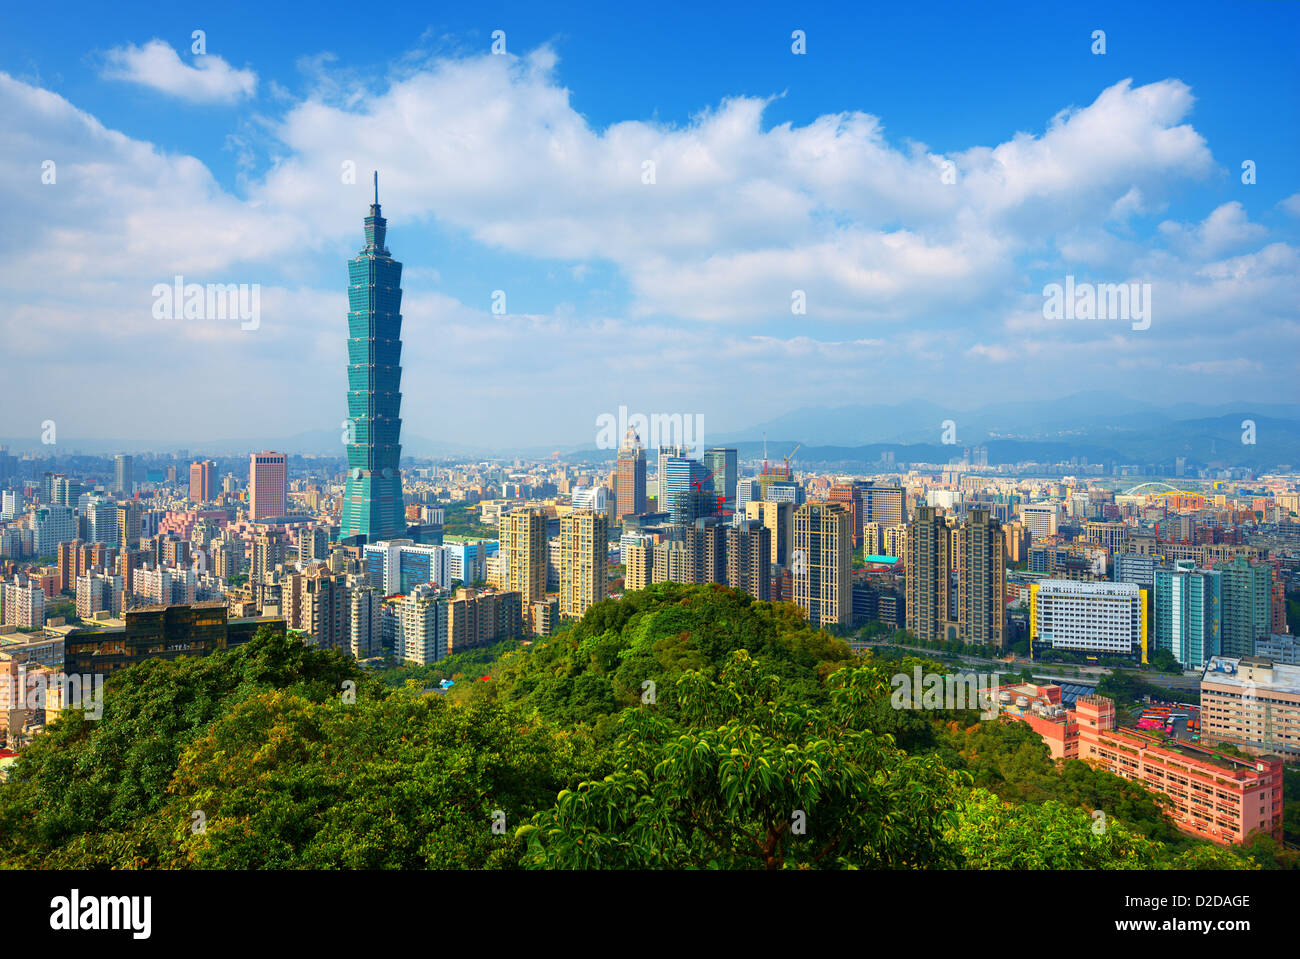 Taipei, Taiwan skyline viewed during the day from Elephant Mountain. - Stock Image